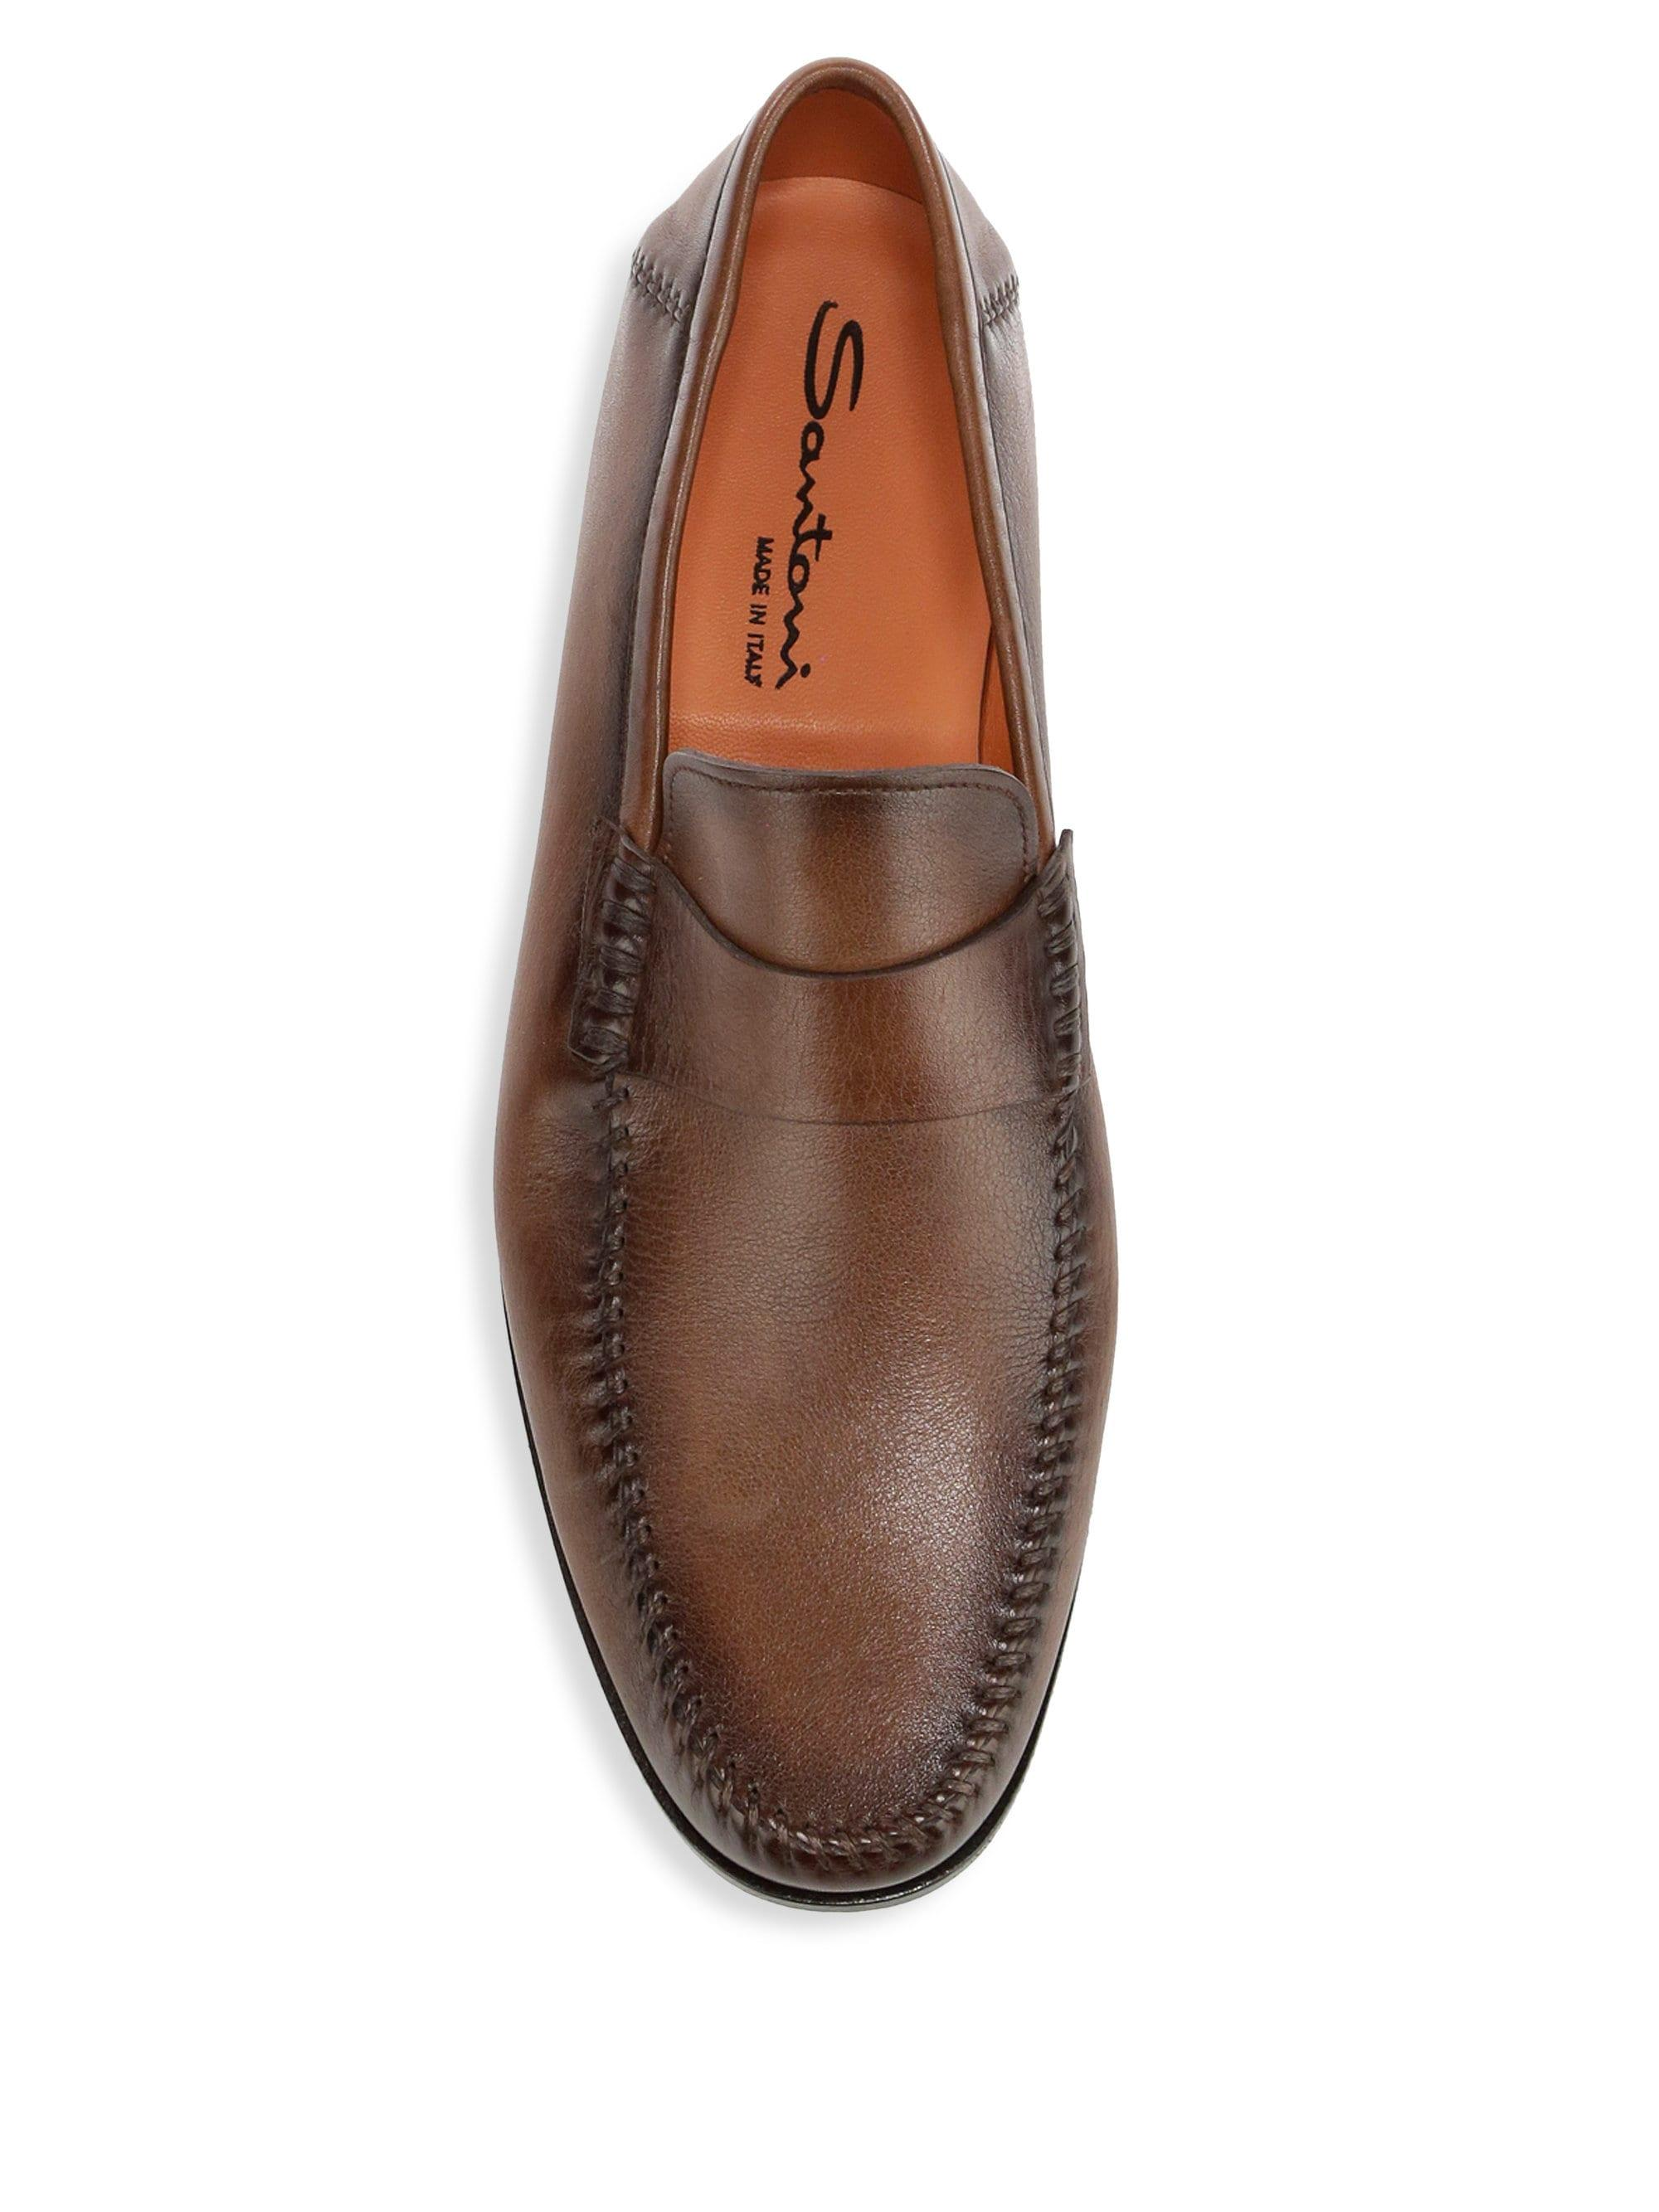 094fc90865 Lyst - Santoni Men's Paine Leather Loafers - Brown - Size 11.5 D in Brown  for Men